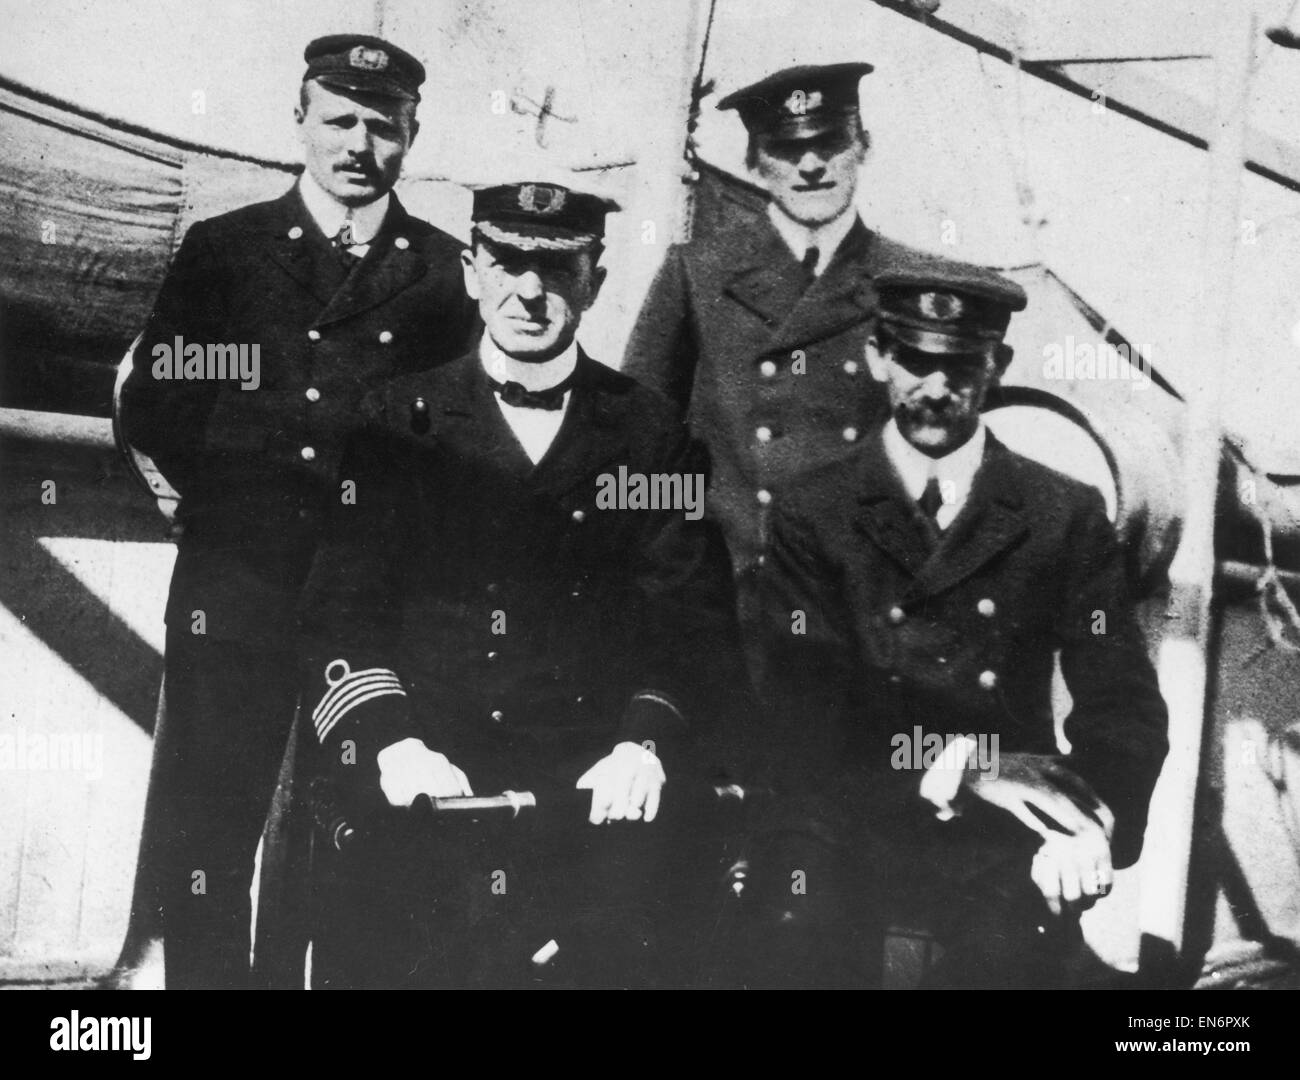 Captain Stanley Lord of the SS Californian (front row holding spy glass) poses with three senior officers. Controversy - Stock Image